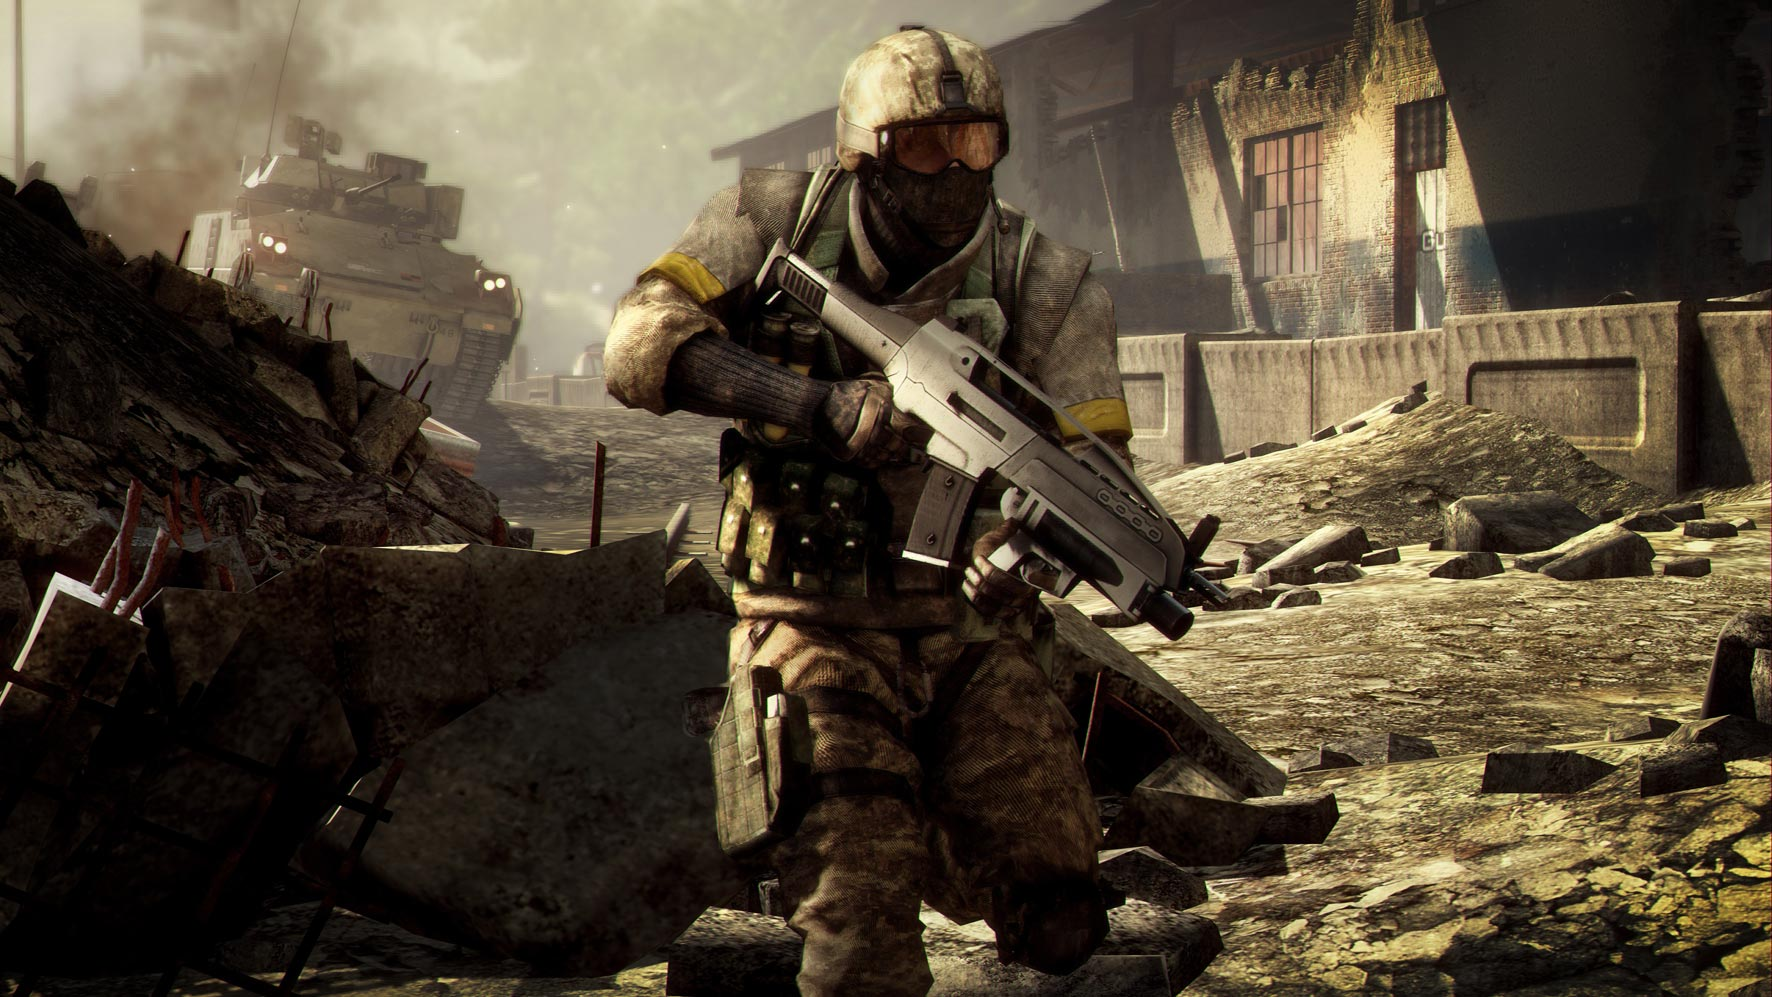 Battlefield: Bad Company 2 recibirá los mapas de Bad Company 1 en el Vip Map Pack 7 [For Free]